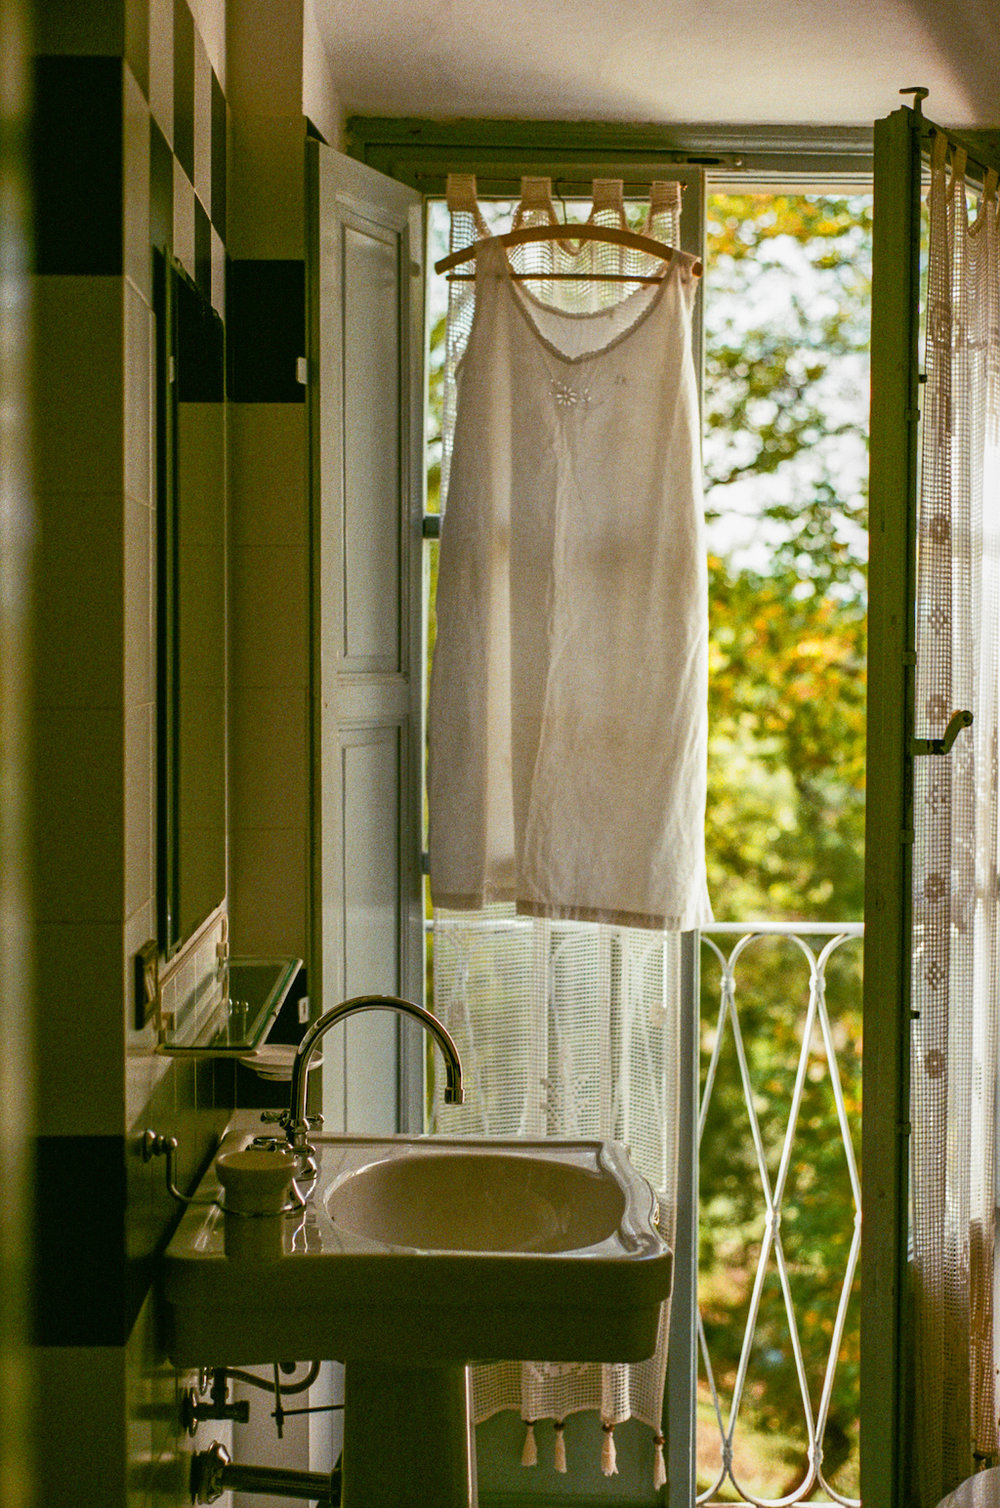 Rooms_and_bathrooms-34.jpg